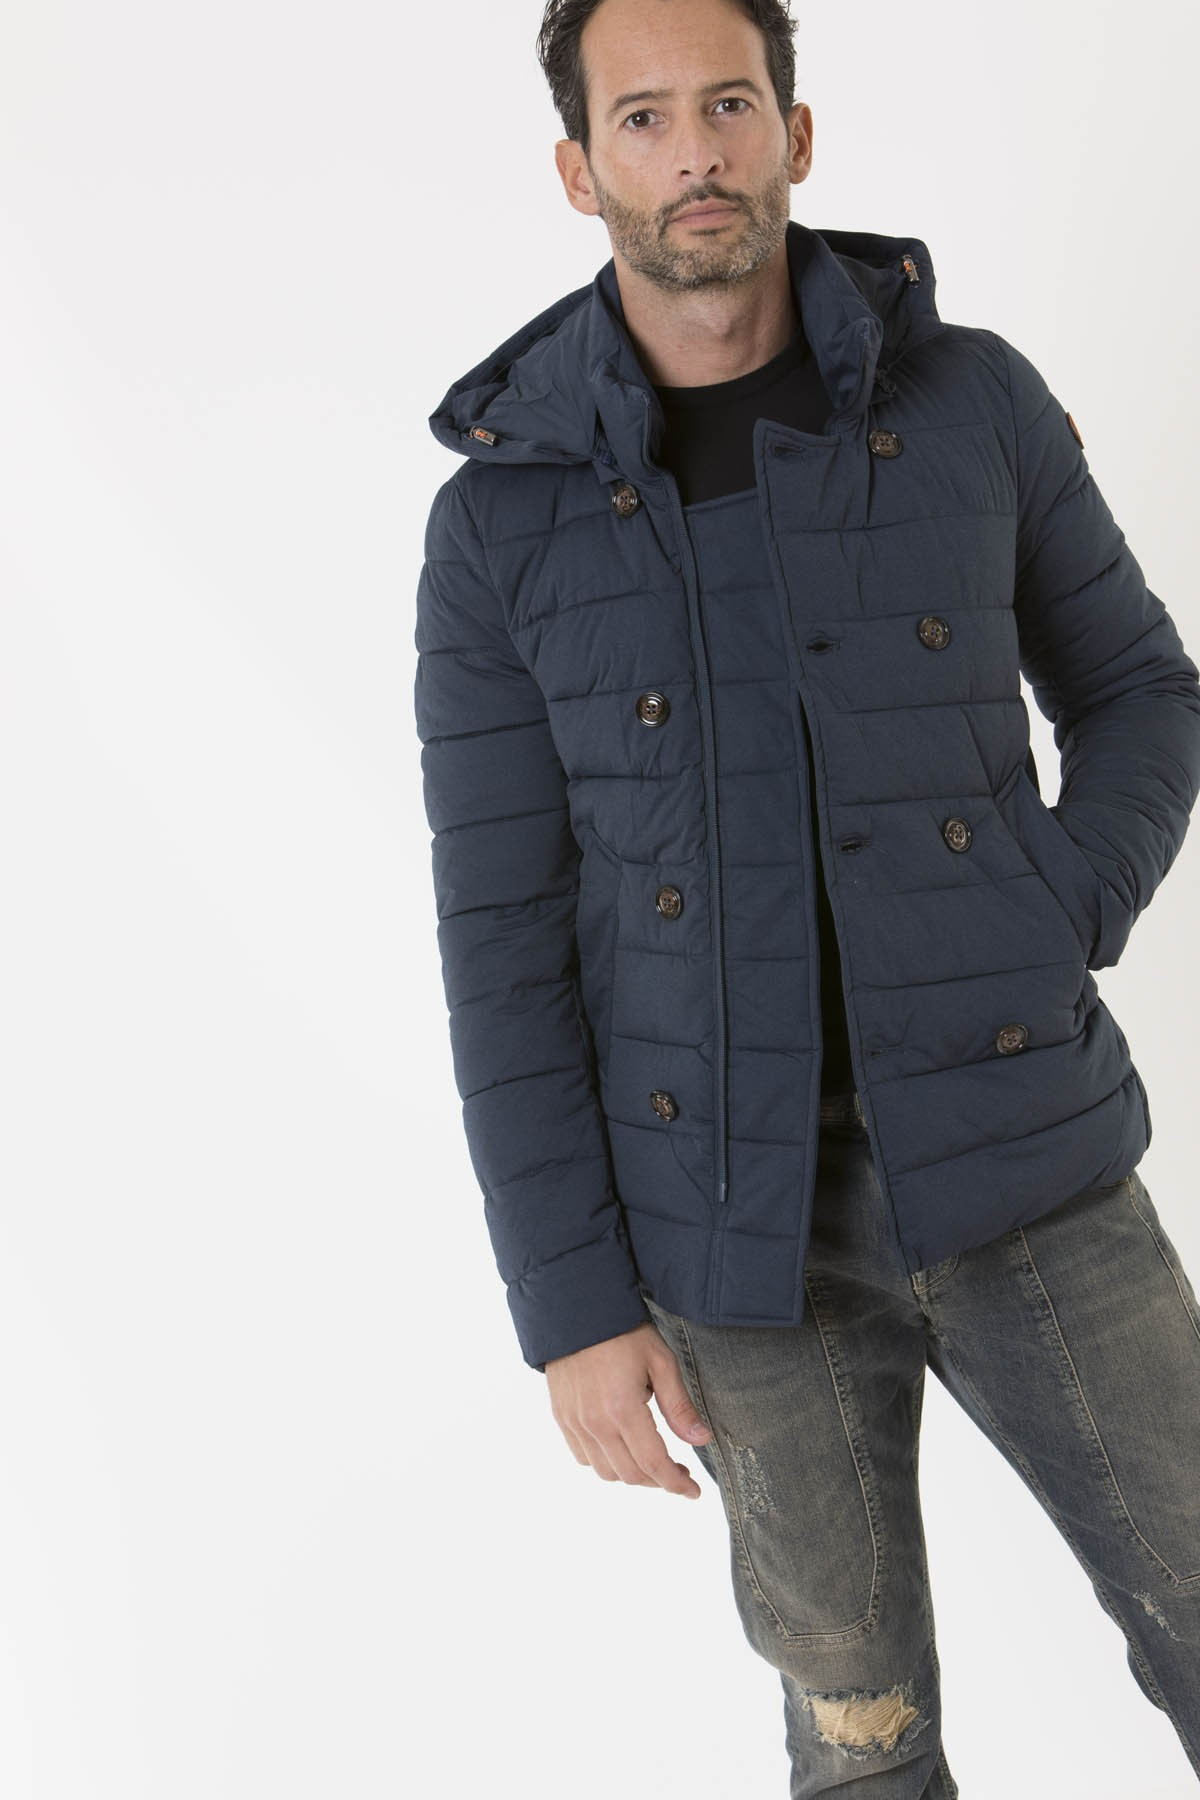 size 40 386a6 82c36 Jacket for man D3853M ANGY7 SAVE THE DUCK F/W 18-19